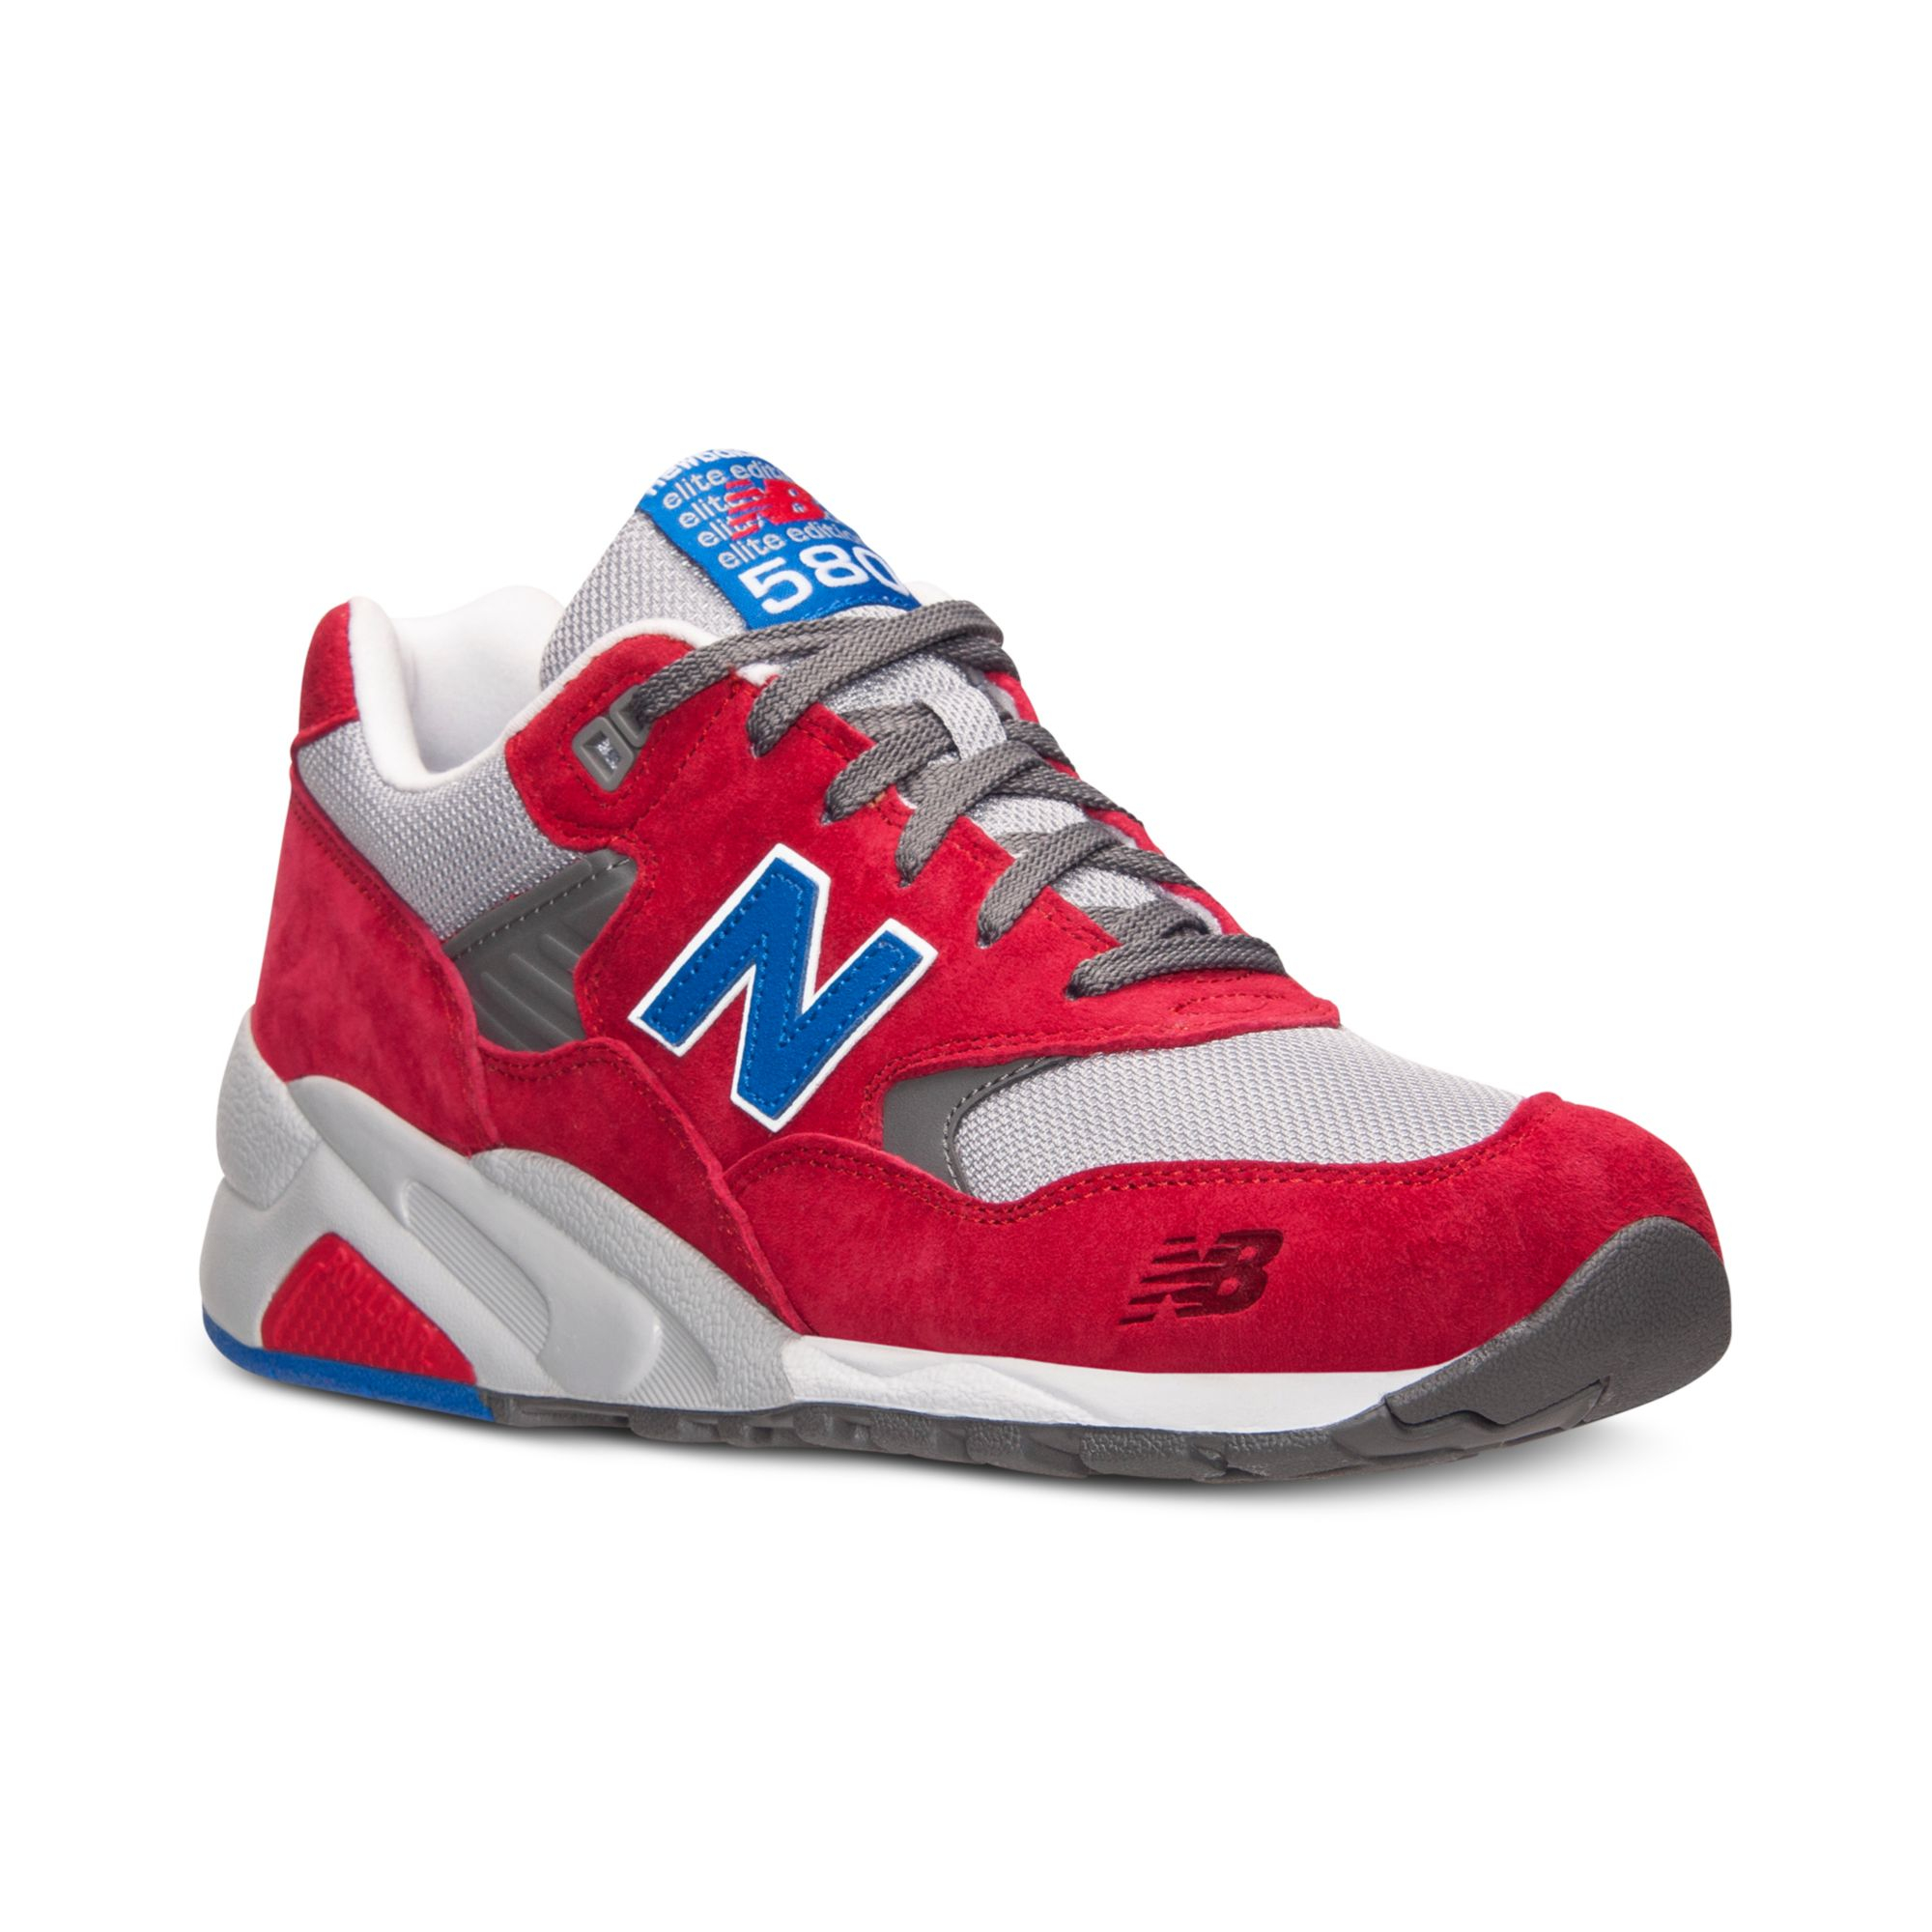 New Balance Designer Sneakers